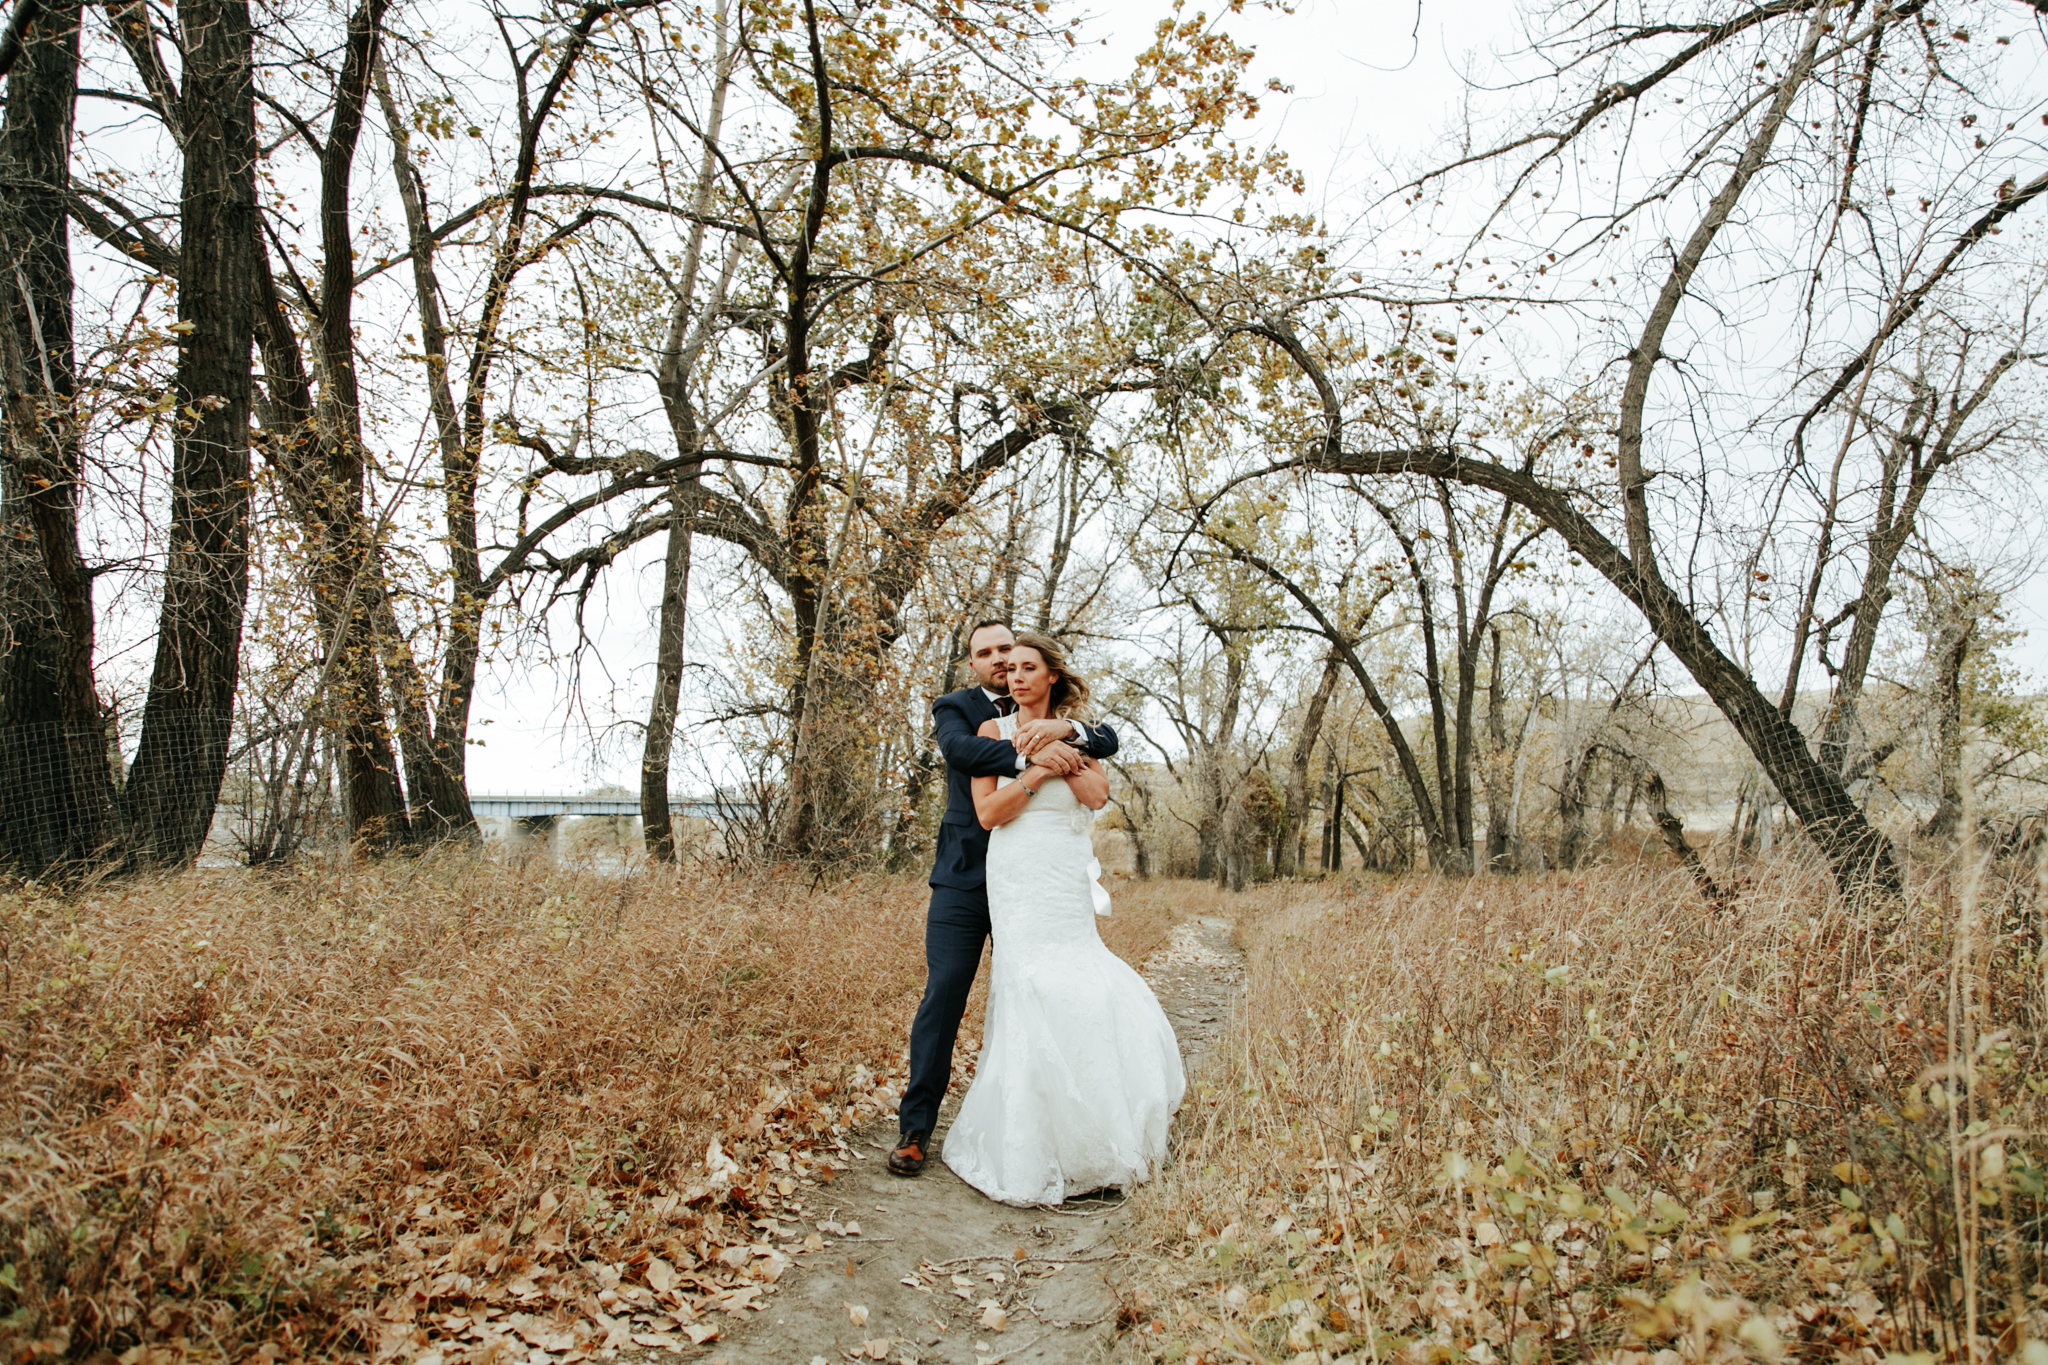 lethbridge-photographer-love-and-be-loved-photography-designed-to-dwell-wedding-katie-kelly-photo-image-picture-45.jpg